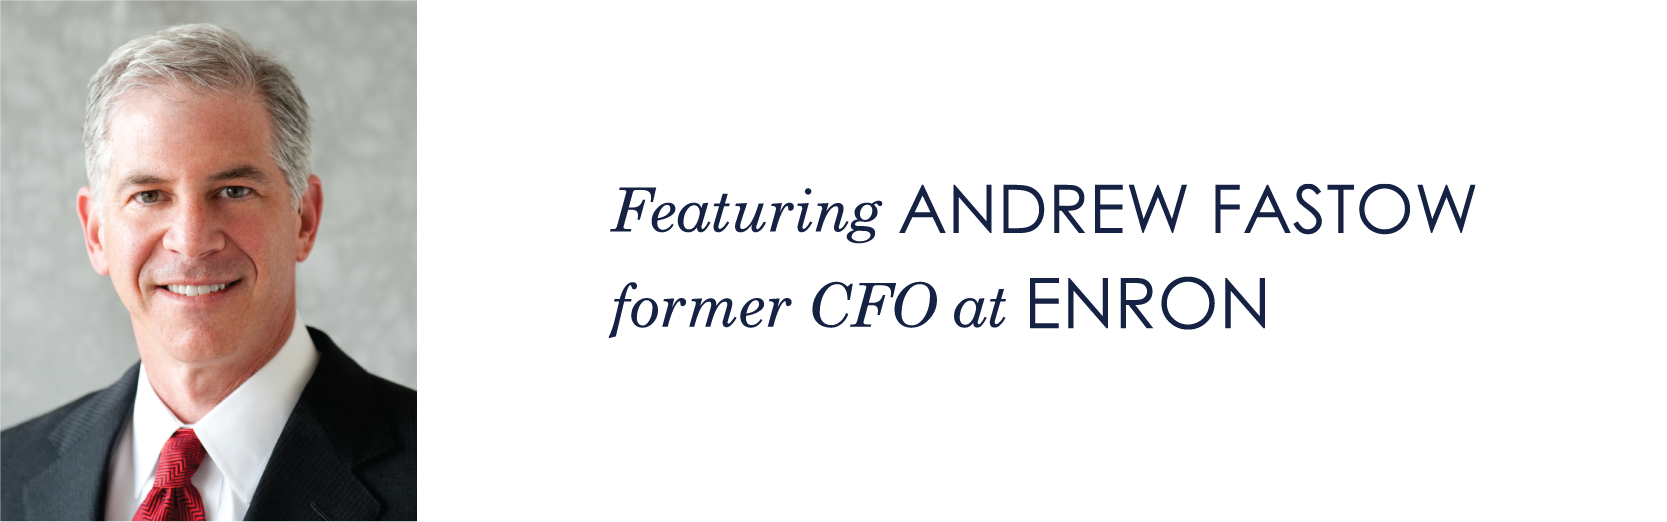 Featuring Andrew Fastow Former CFO at Enron